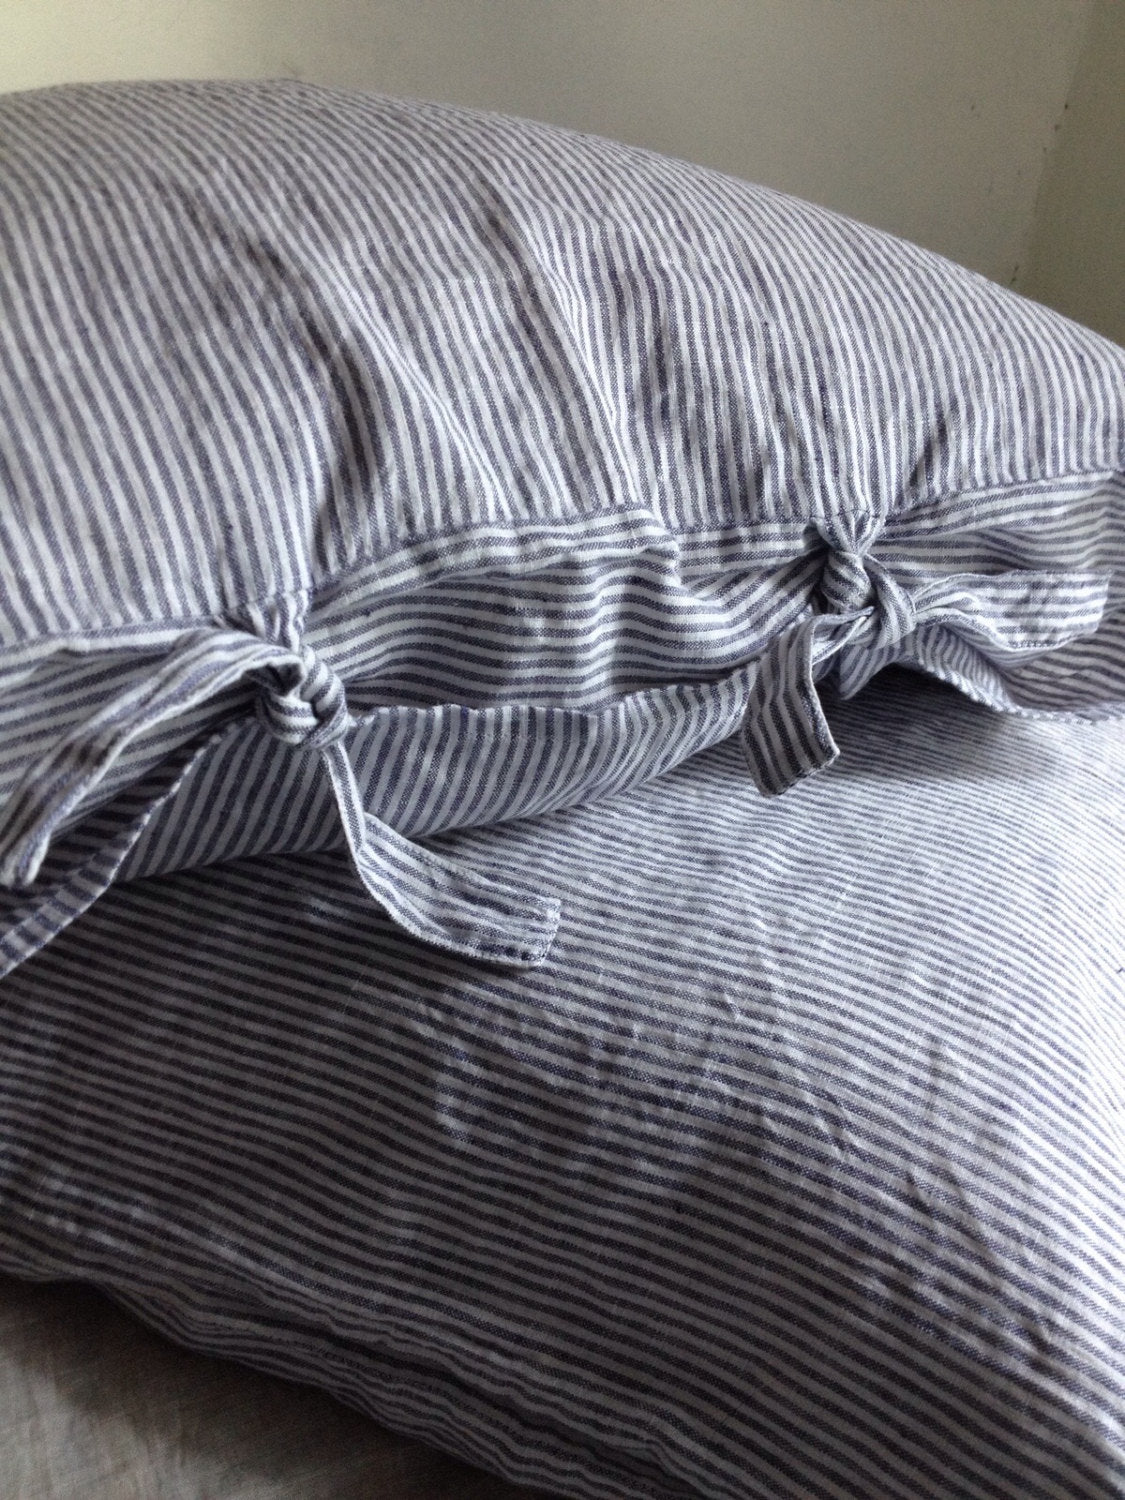 Striped Linen Pillowcase, Linen Pillowcase with thin White and Blue striped, Sham, Queen, King, Standard Linen Pillowcase by Linenbee